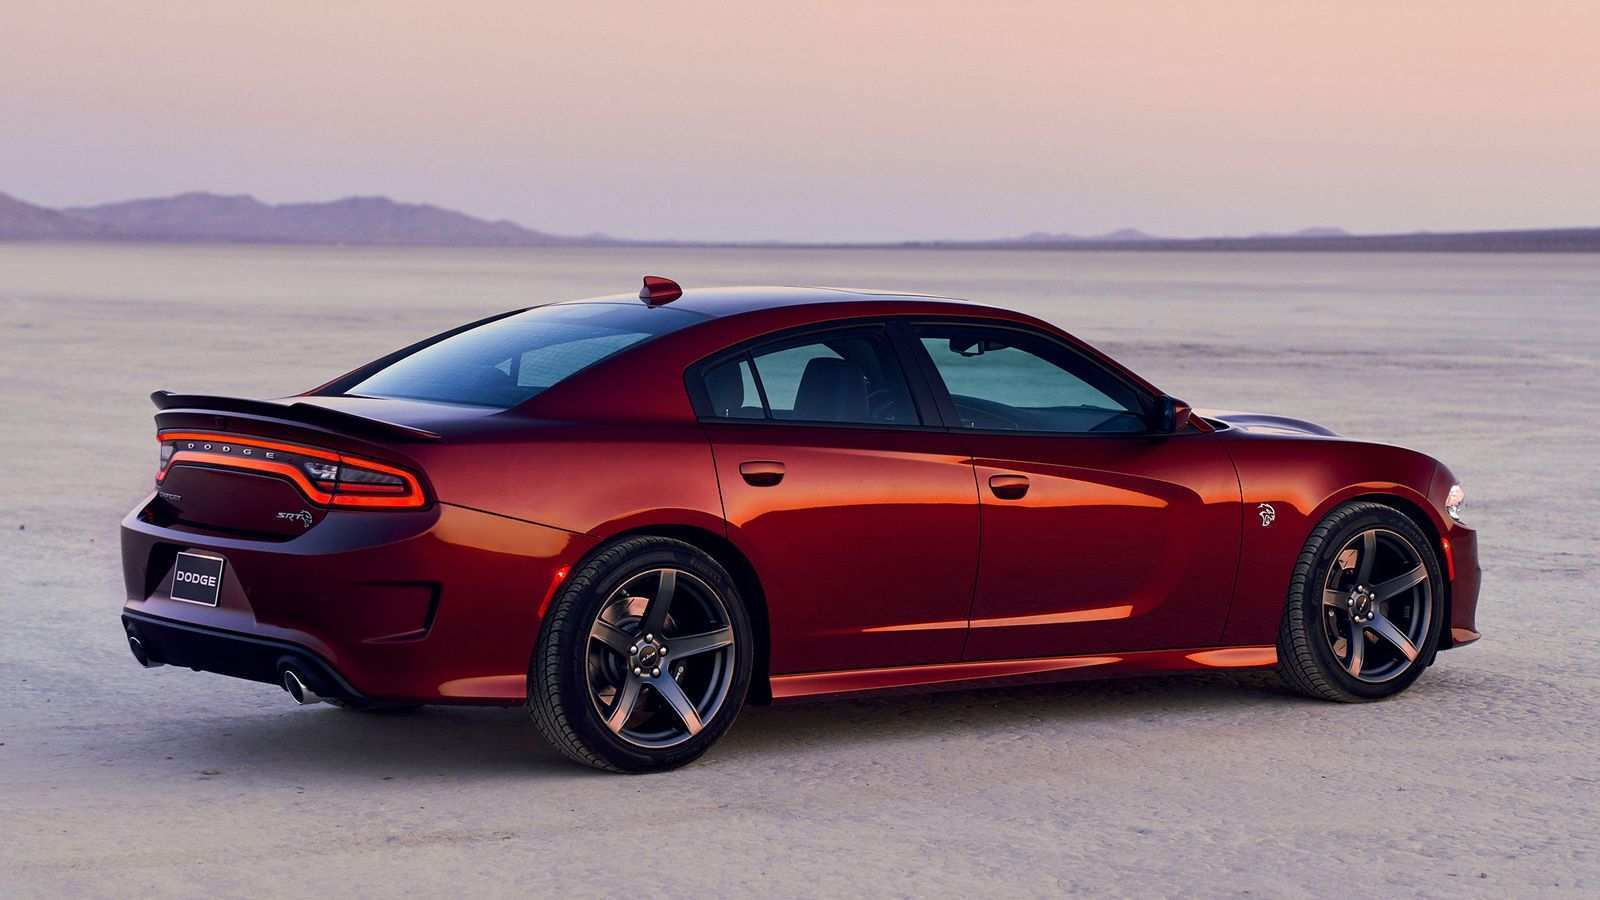 30 Great Will There Be A 2019 Dodge Demon Configurations for Will There Be A 2019 Dodge Demon